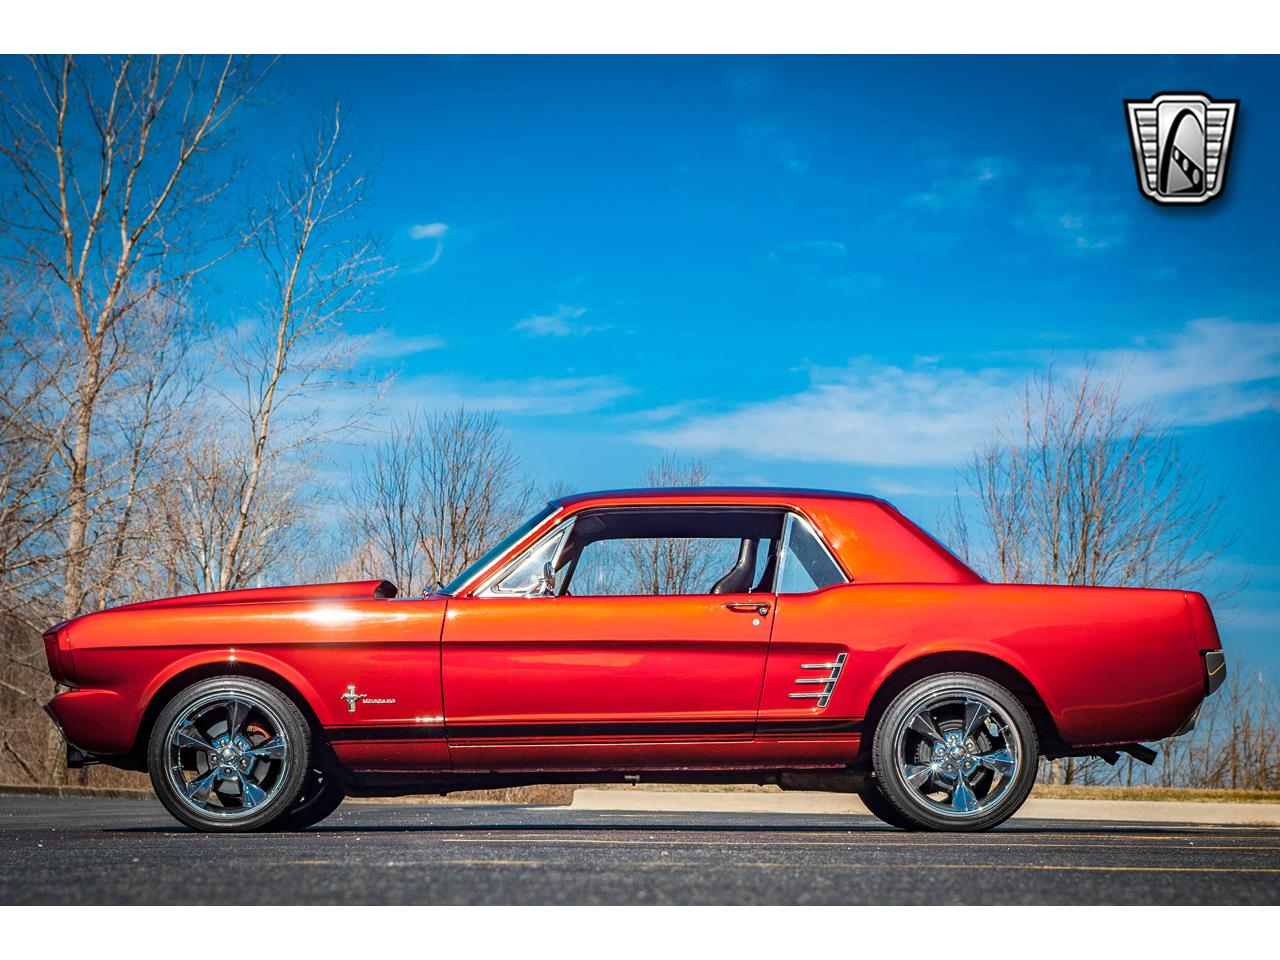 Ford Mustang V8 302 1966 prix tout compris 1966